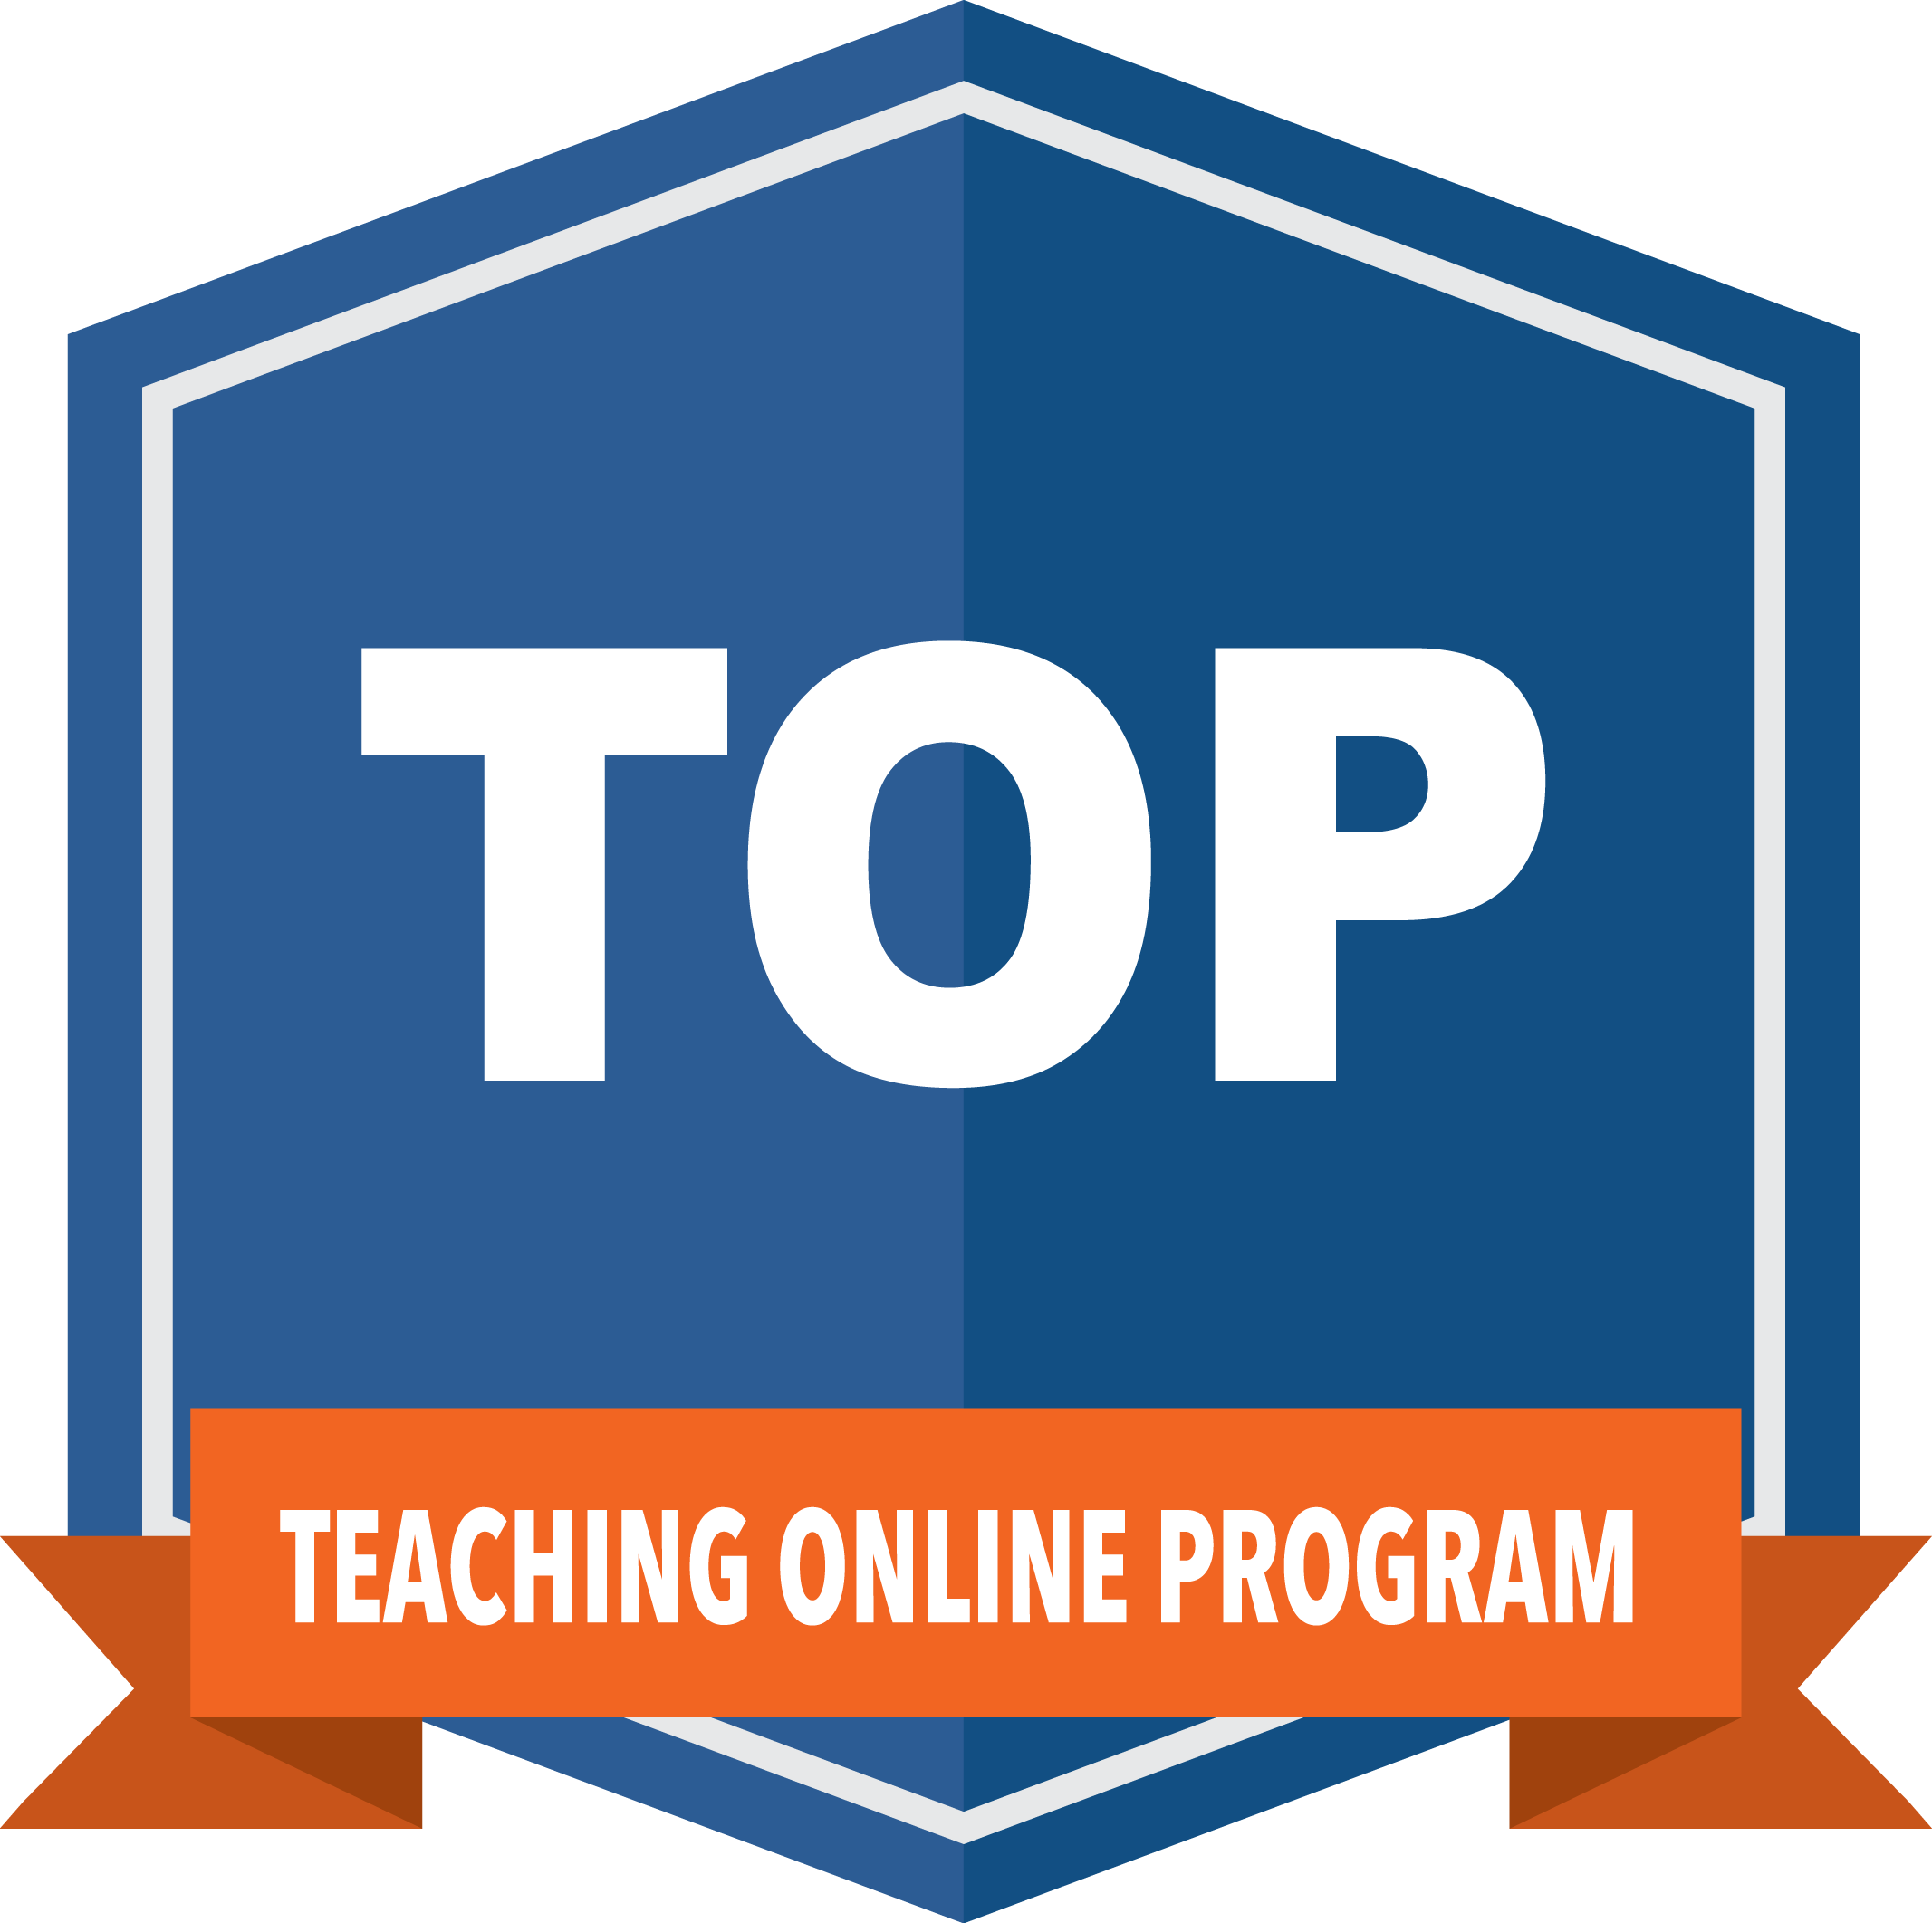 teaching online program badge